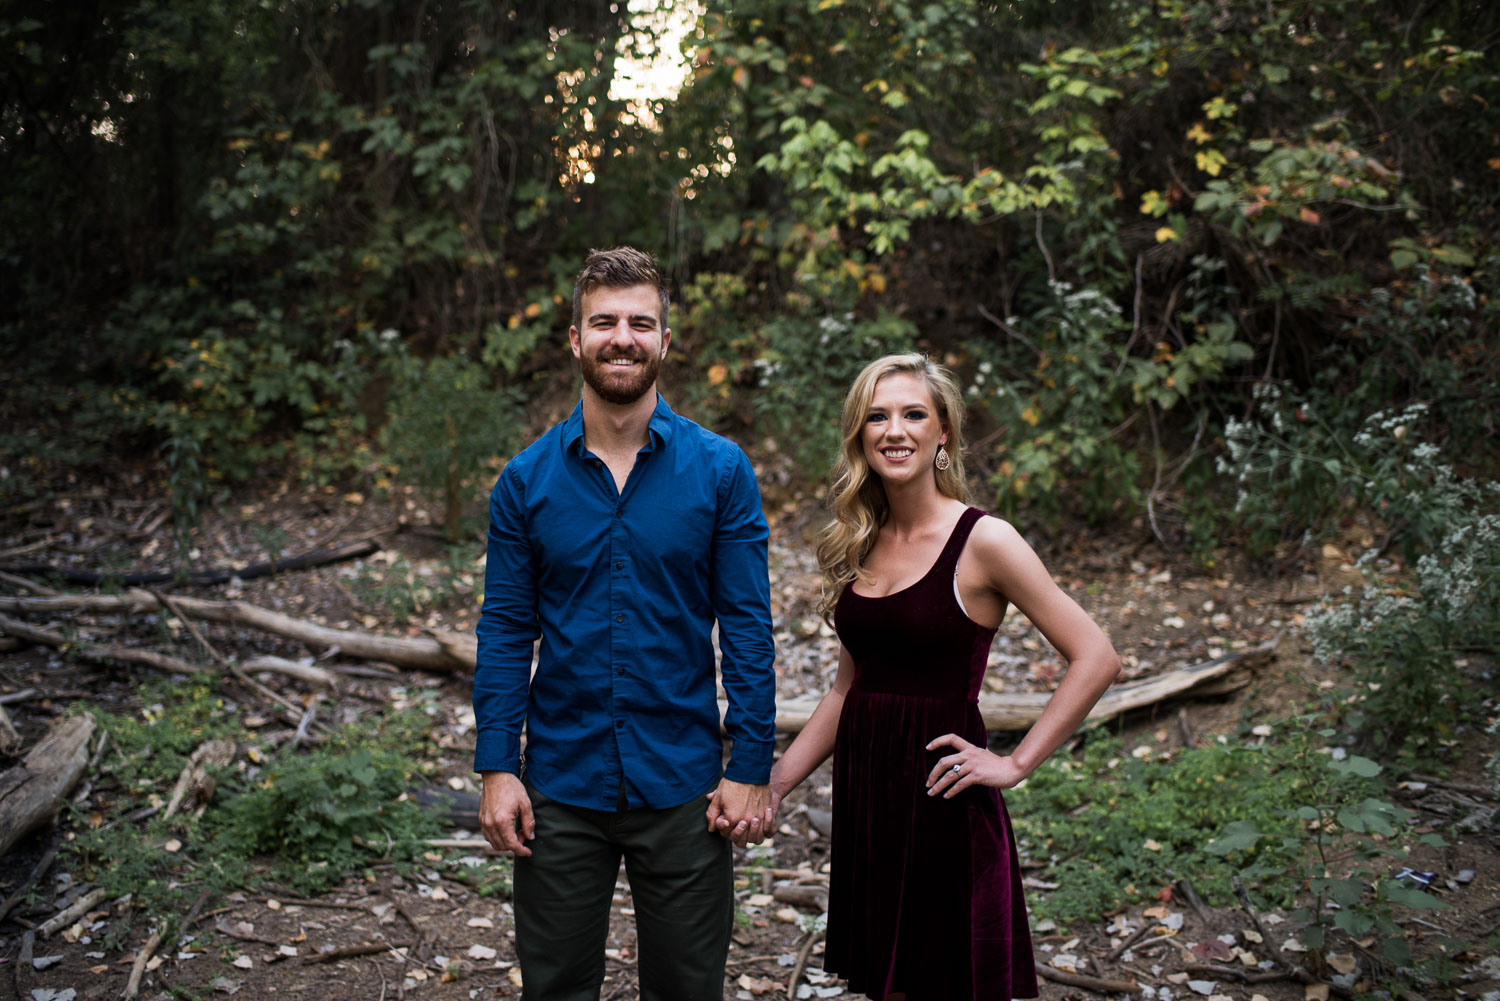 josh - lindsey - engagement - photos - alrington - texas - river - legacy - park-4.jpg